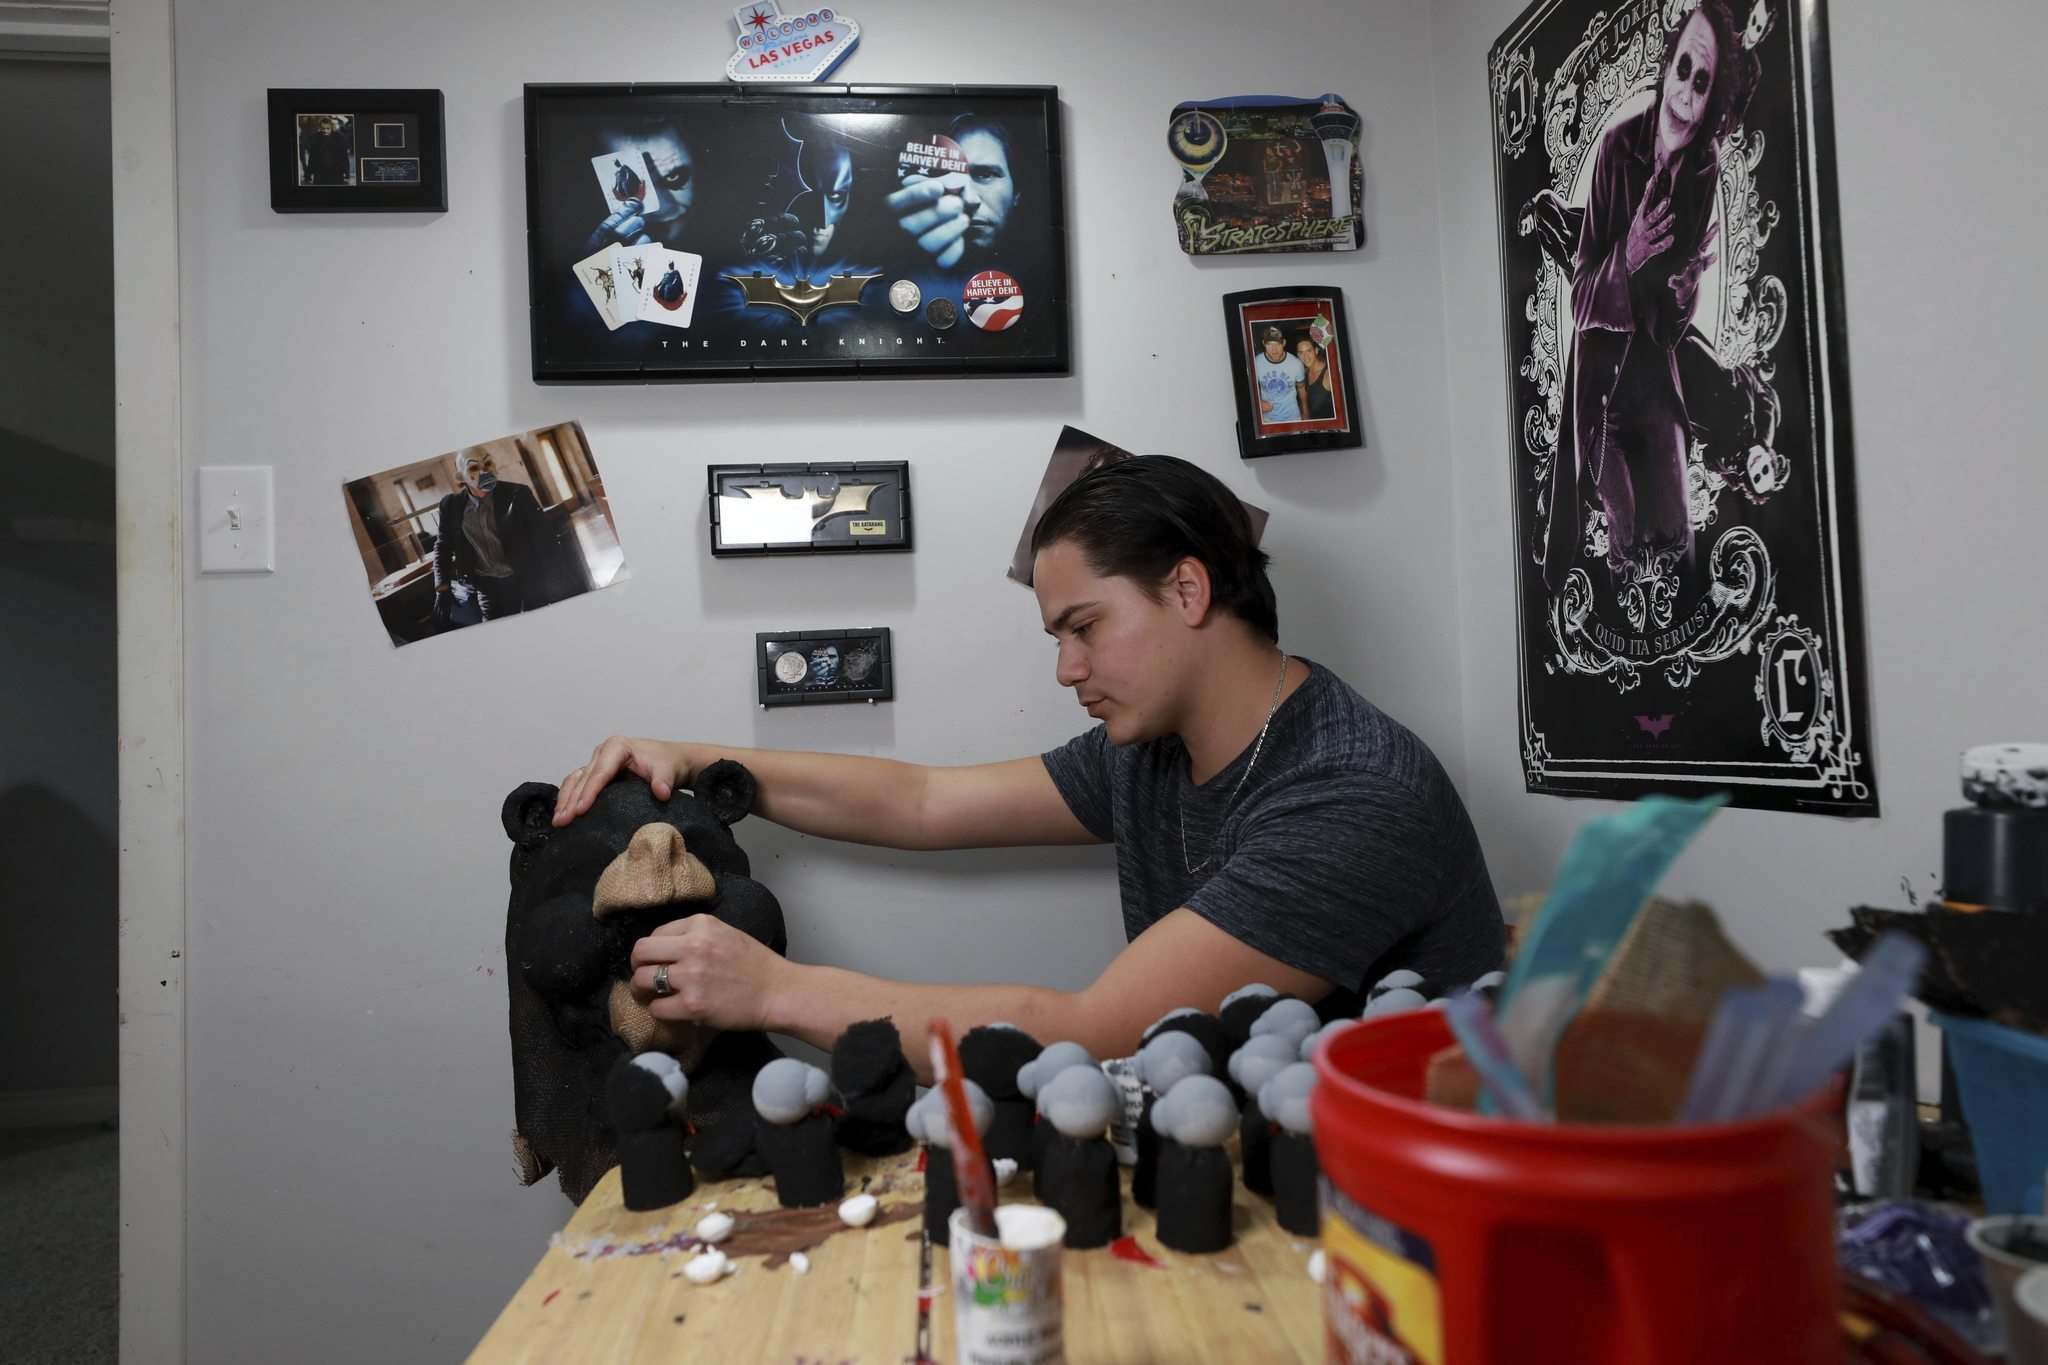 RUTH BONNEVILLE / WINNIPEG FREE PRESS</p></p><p>Nobess puts a finishing touch on another mask. He'll be at this weekend's Comic Con.</p>